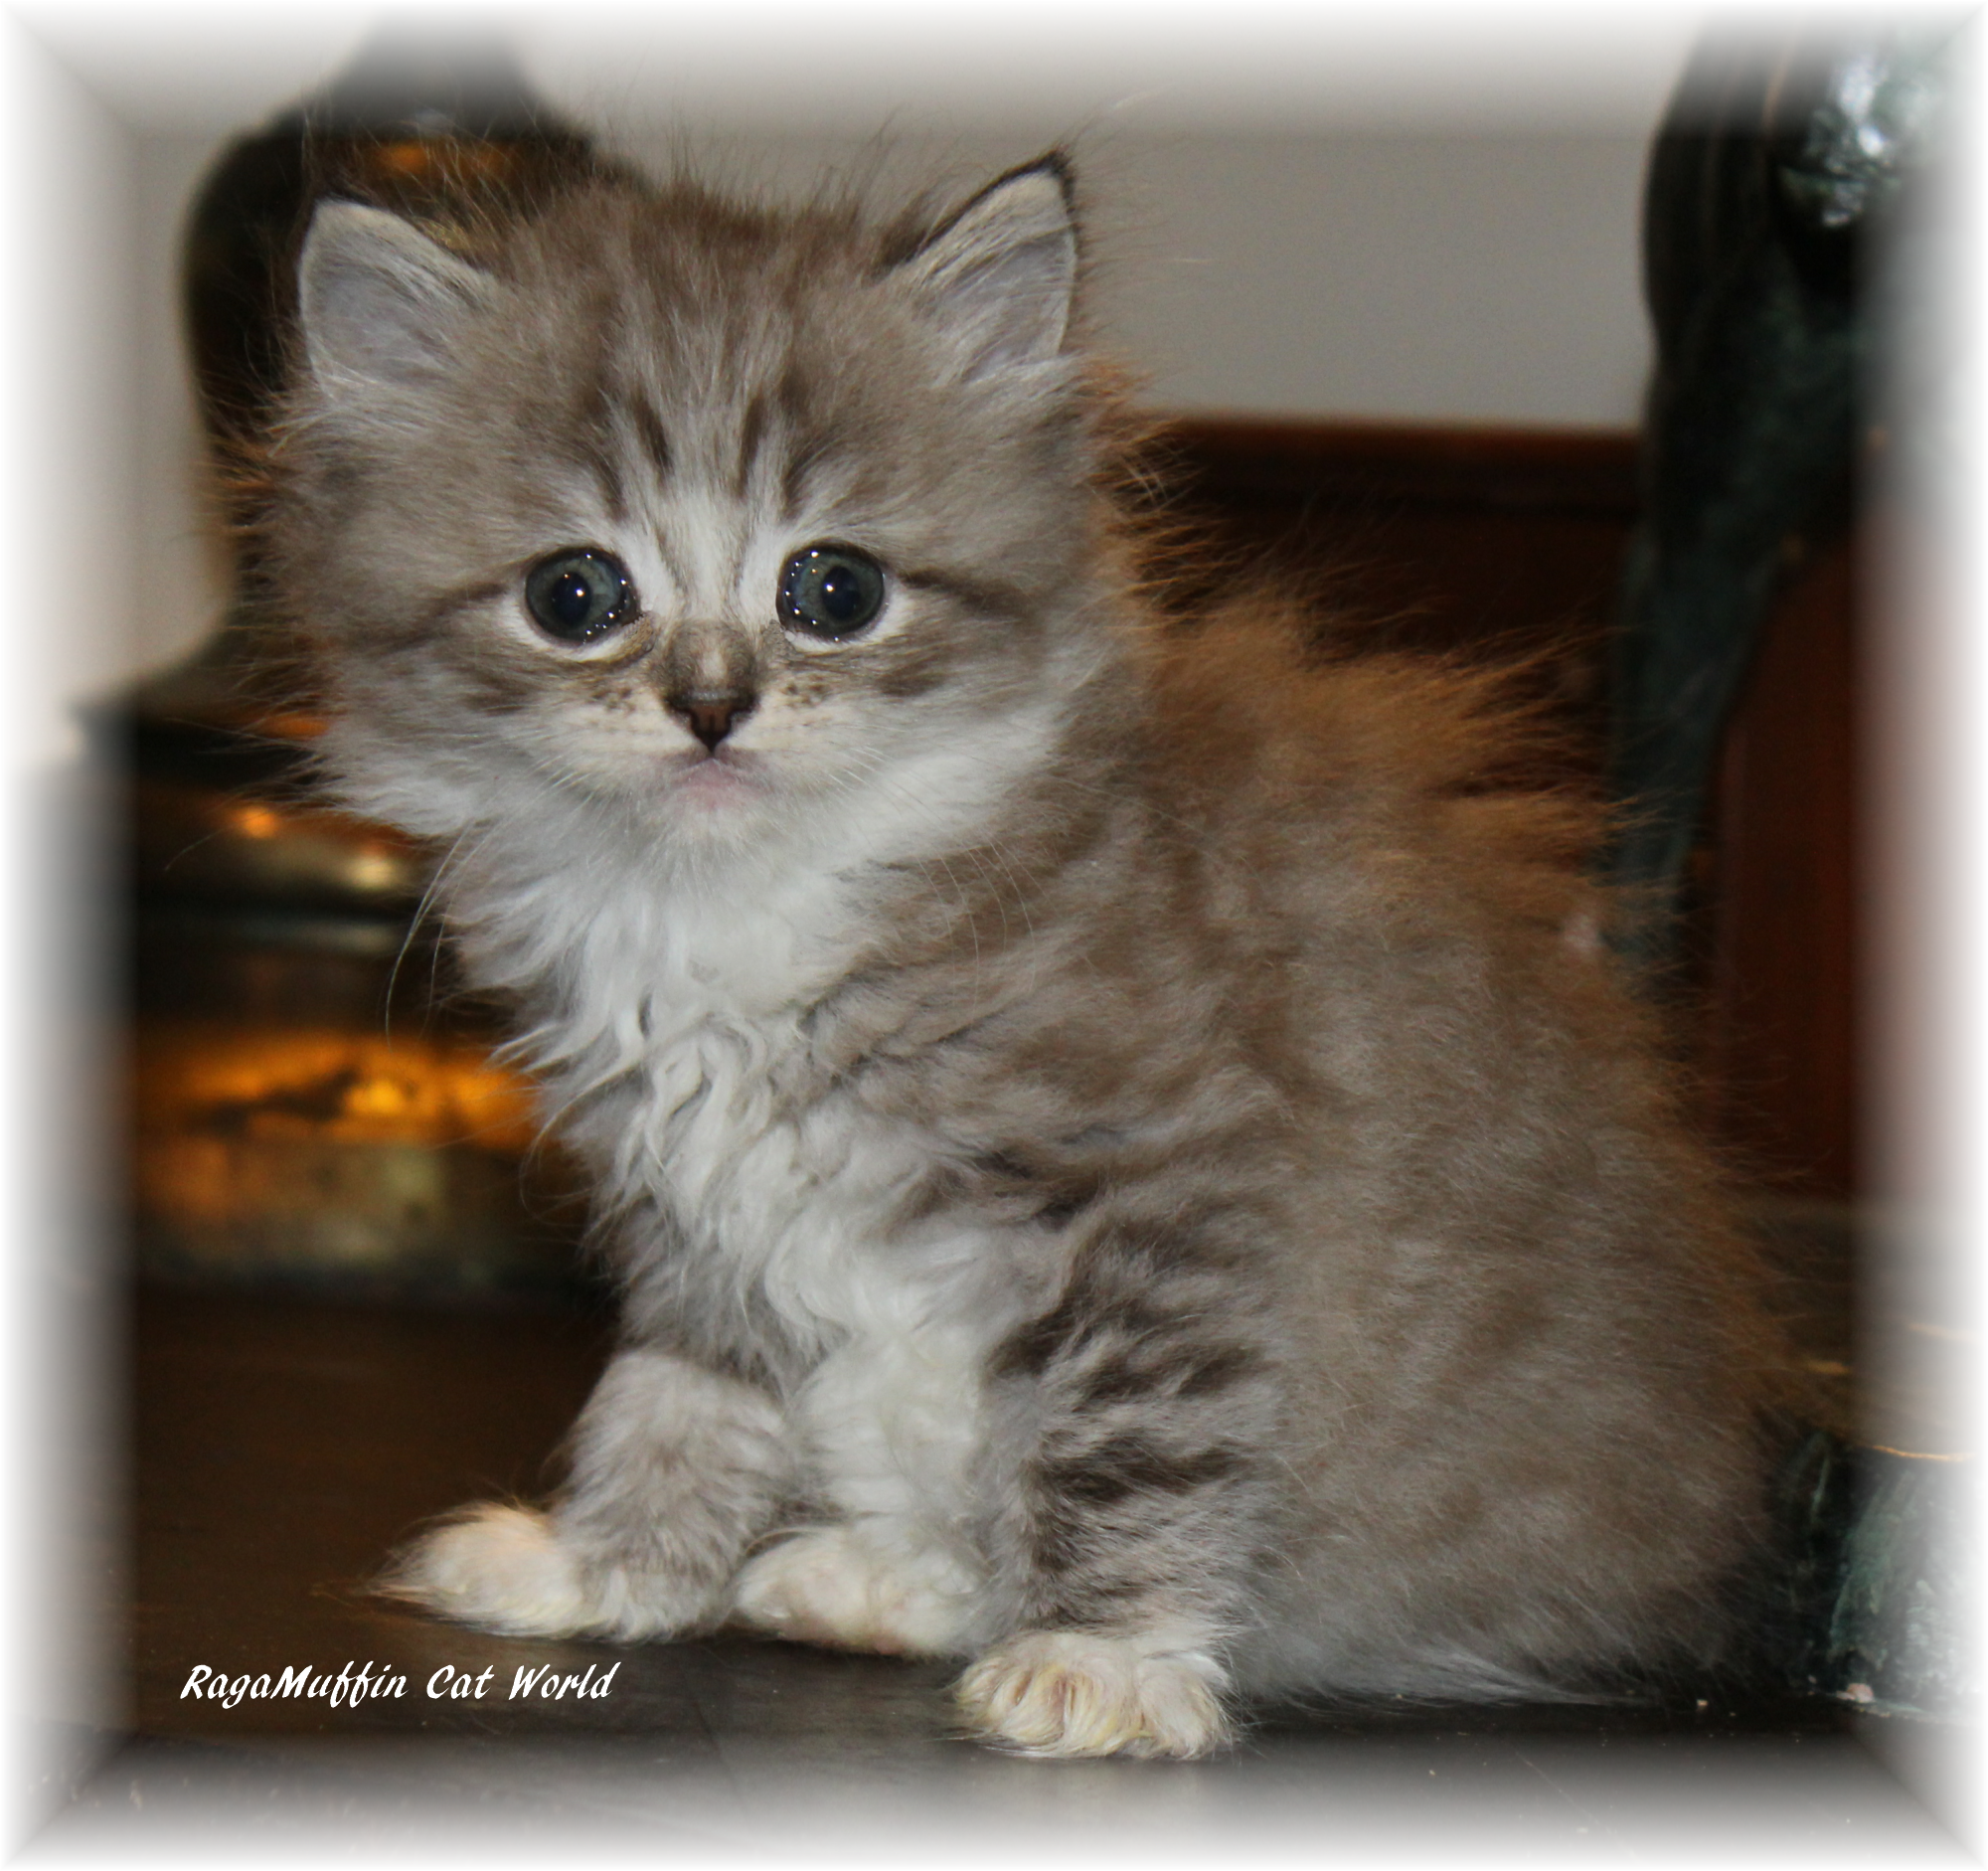 Ragamuffin Cat World S Anna Female From The L Il Life Is Good Litter Ragamuffin Kitten For Adoptionl D Ragamuffin Cat Ragamuffin Kittens Kitten Adoption